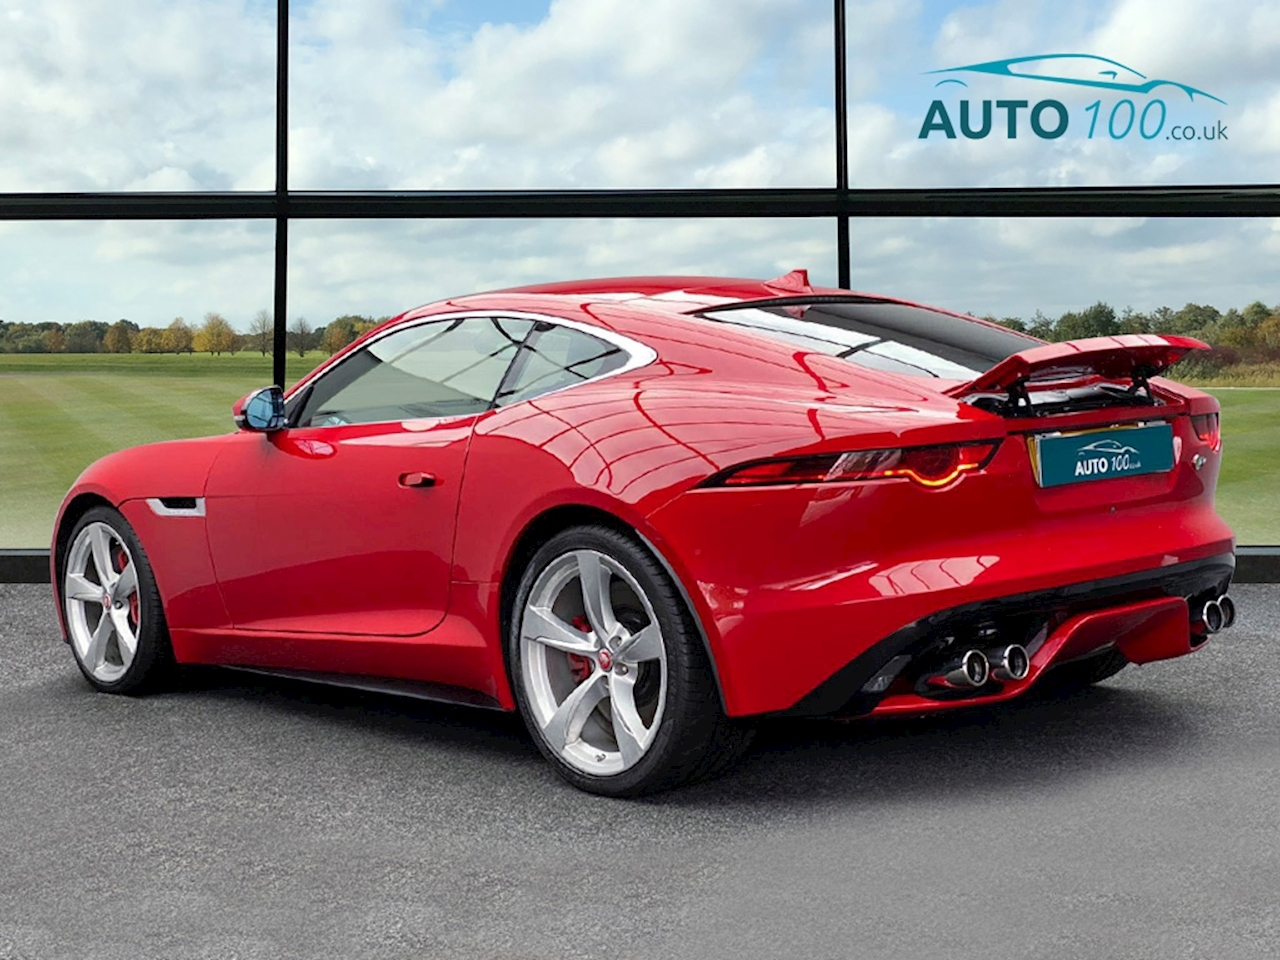 Jaguar F-Type R Coupe 5.0 Auto Petrol